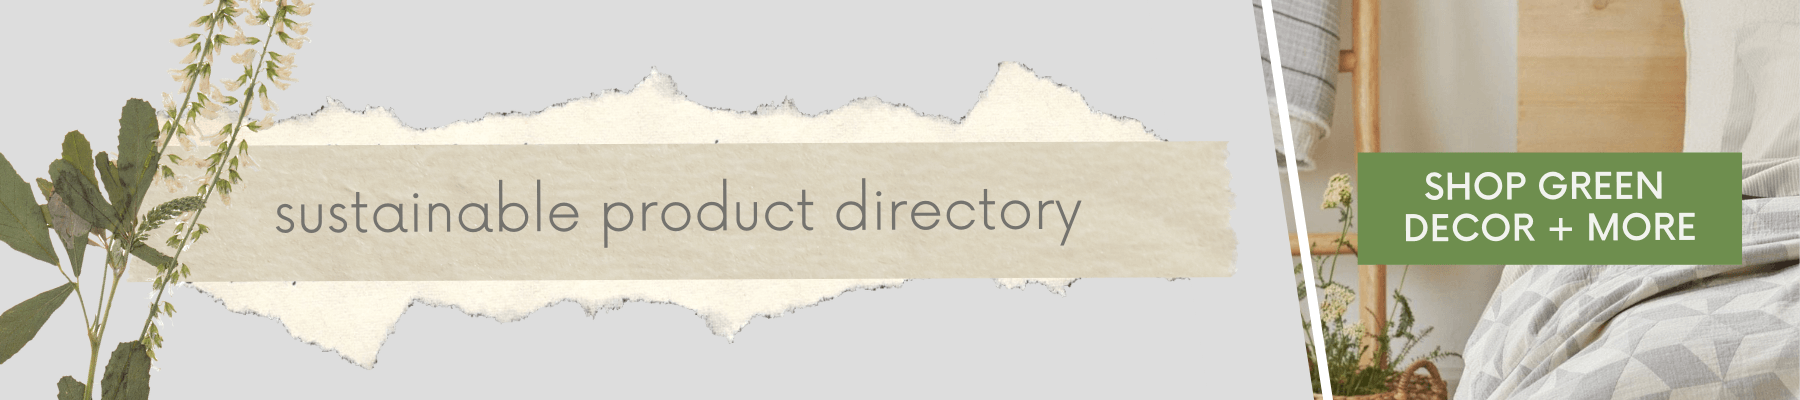 Click to visit the Of Houses and Trees sustainable products directory. Support brands trying to make a difference in the world by purchasing eco-conscious decor, ethical fashion, green gifts and more.